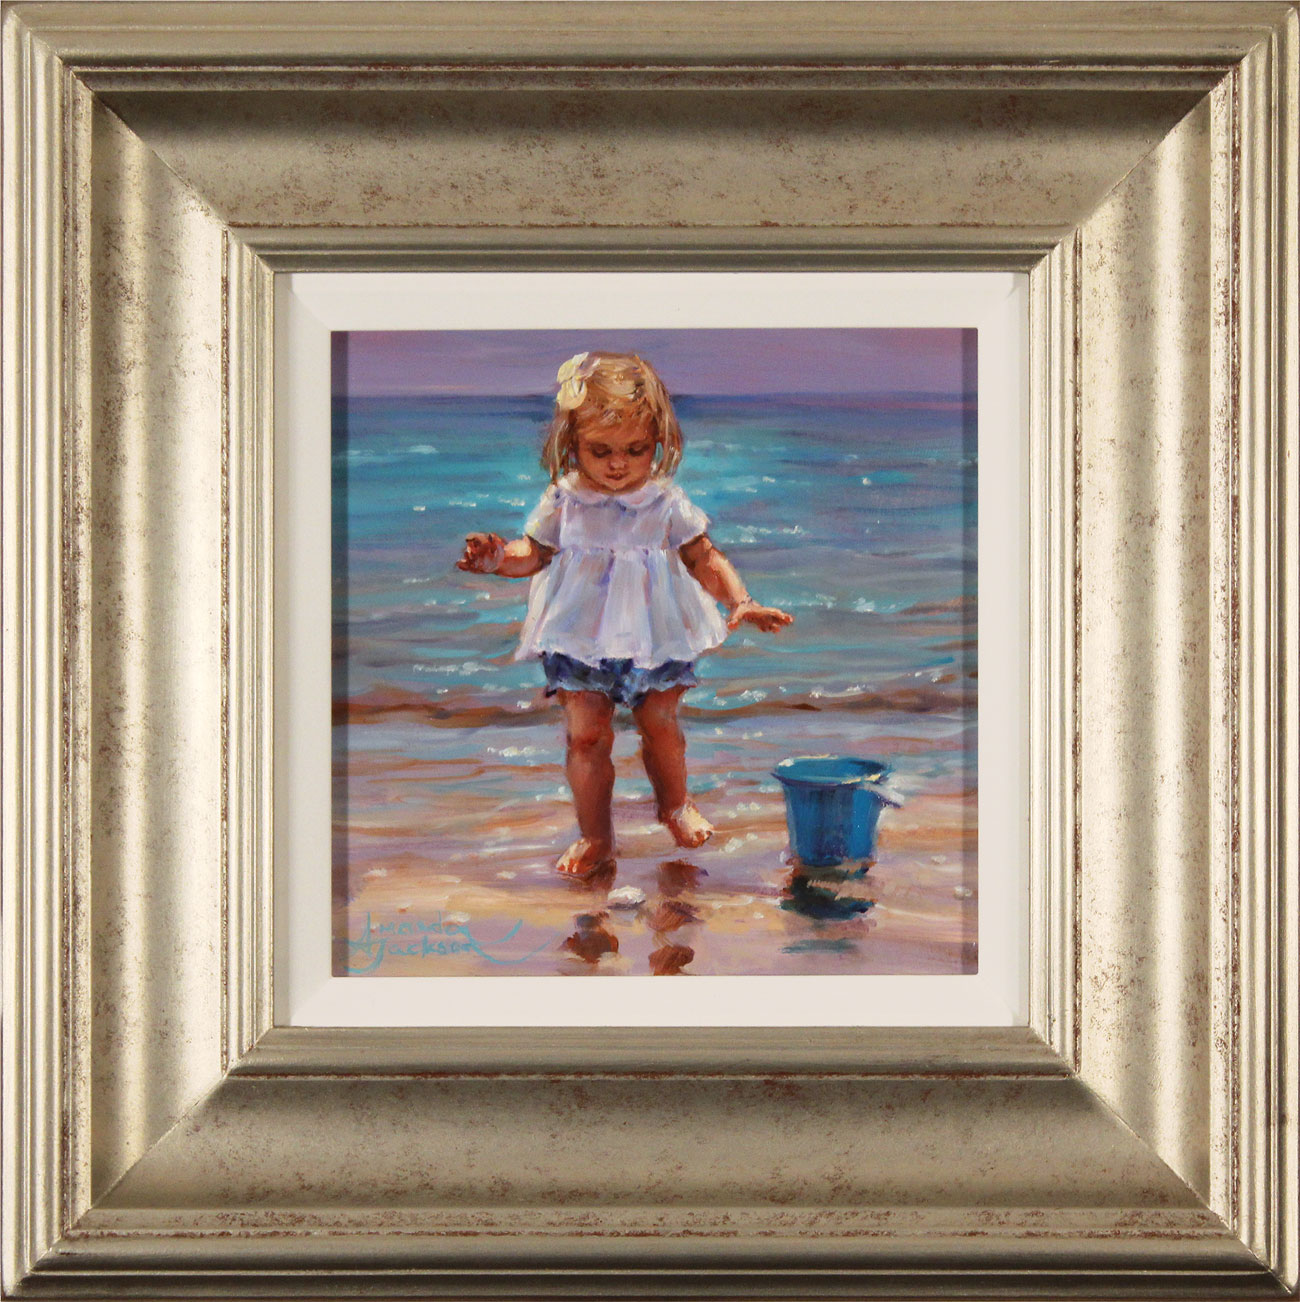 Amanda Jackson, Original oil painting on panel, Day at the Seaside Click to enlarge